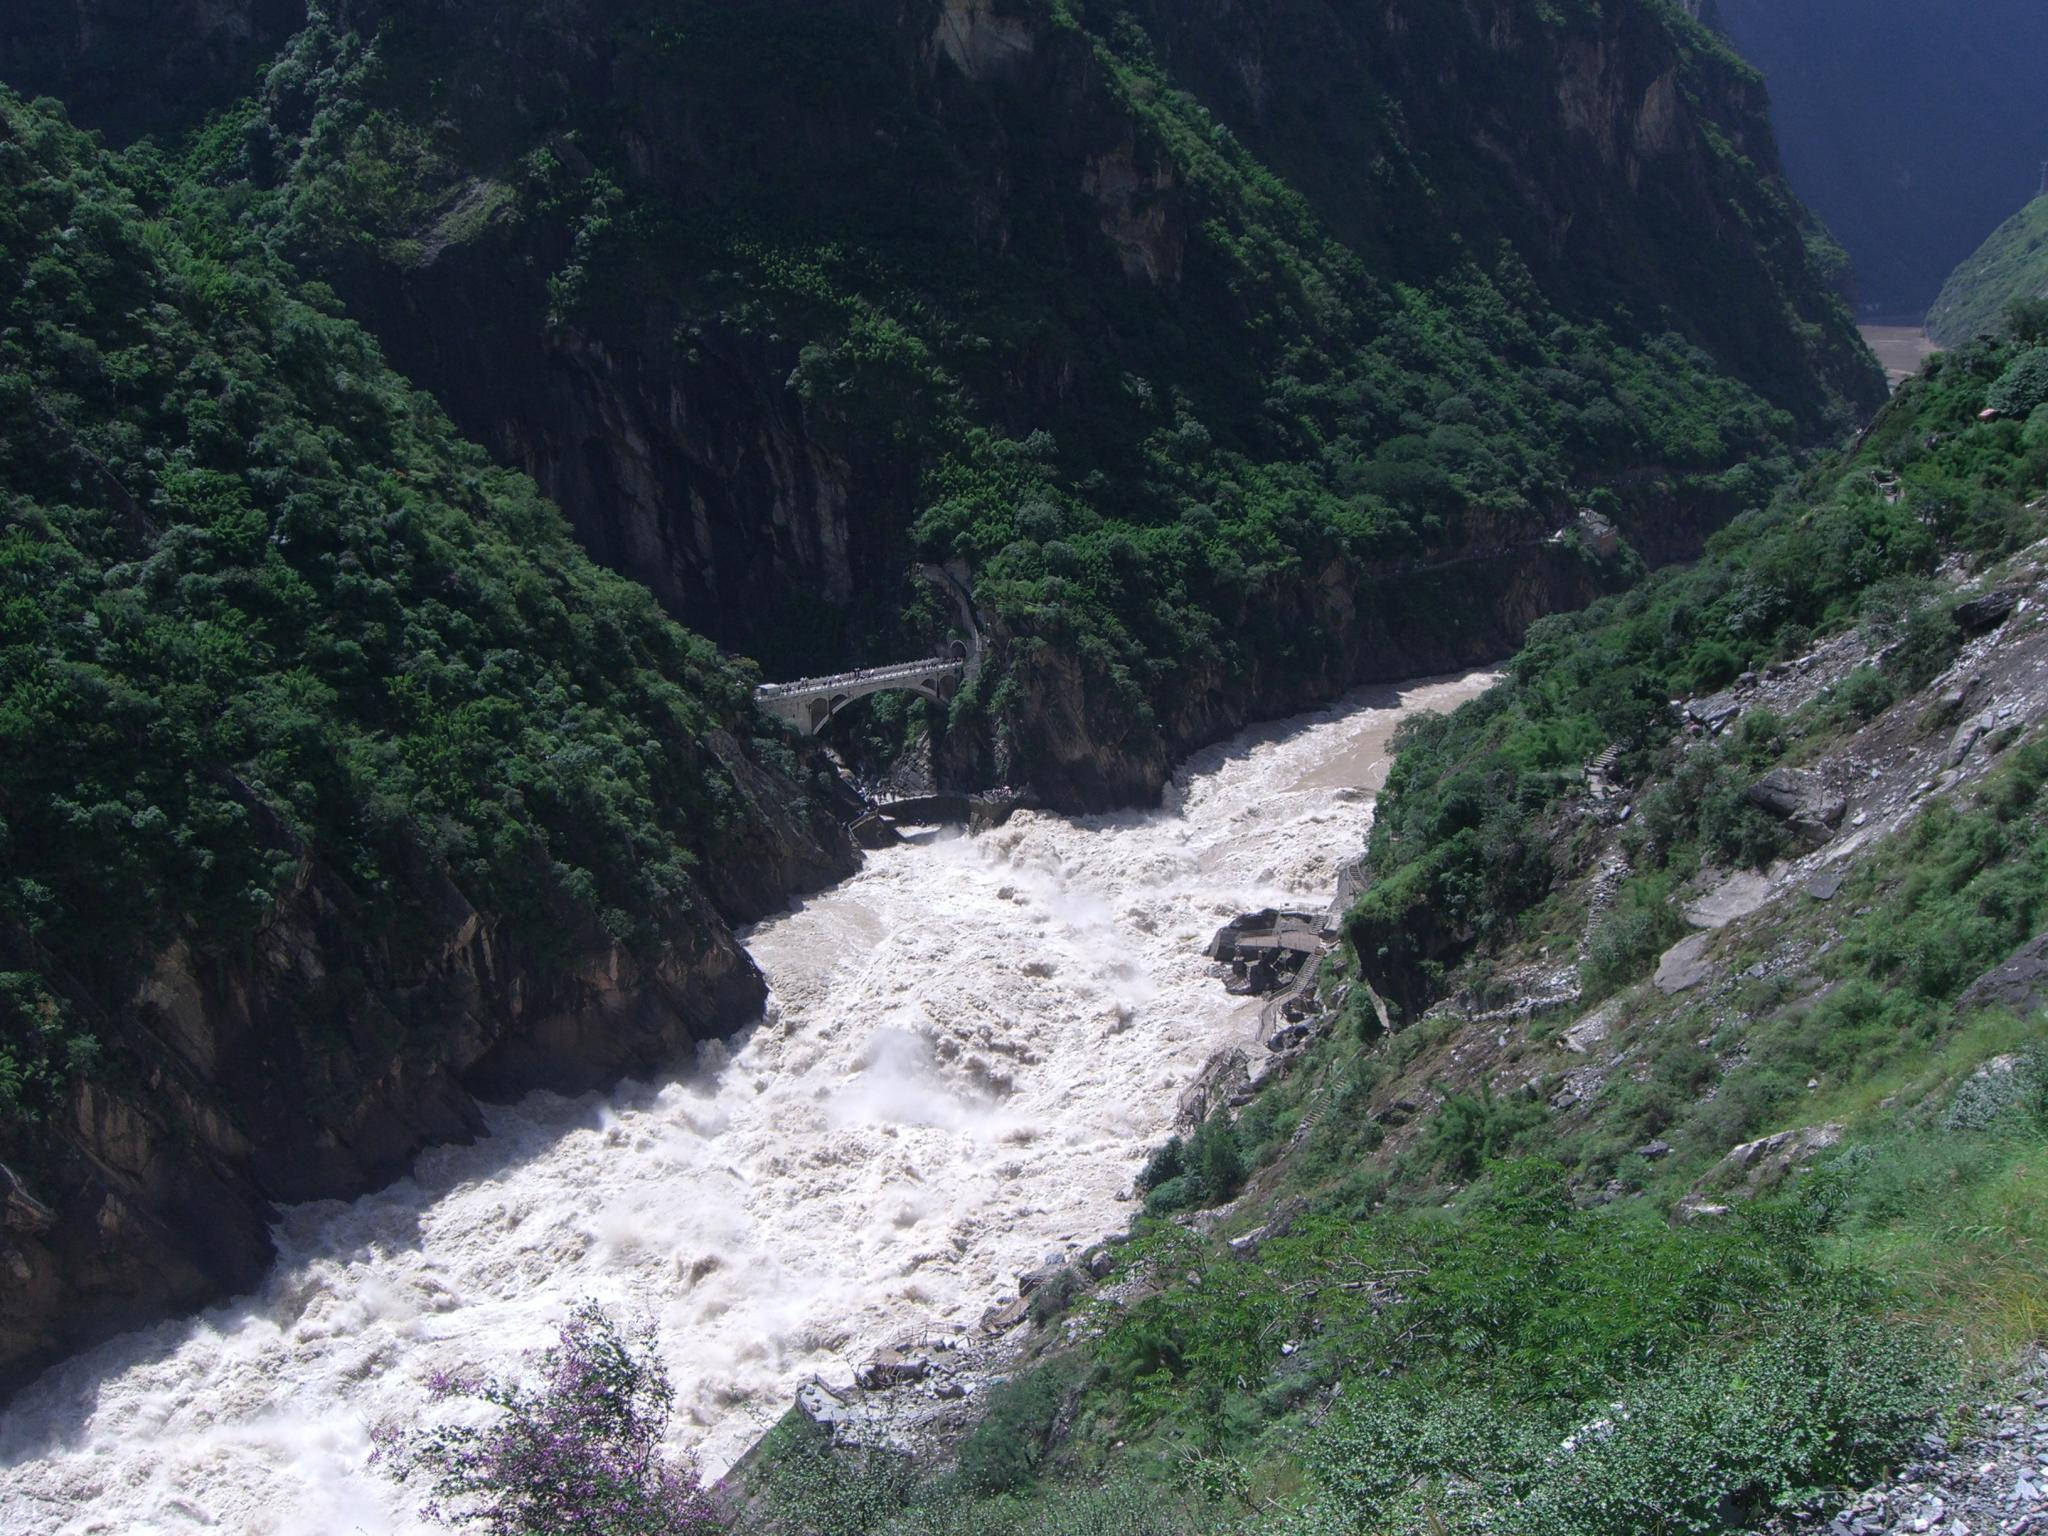 Upper gorge and 丽江县望峡桥 bridge - Tiger Leaping Gorge - wide